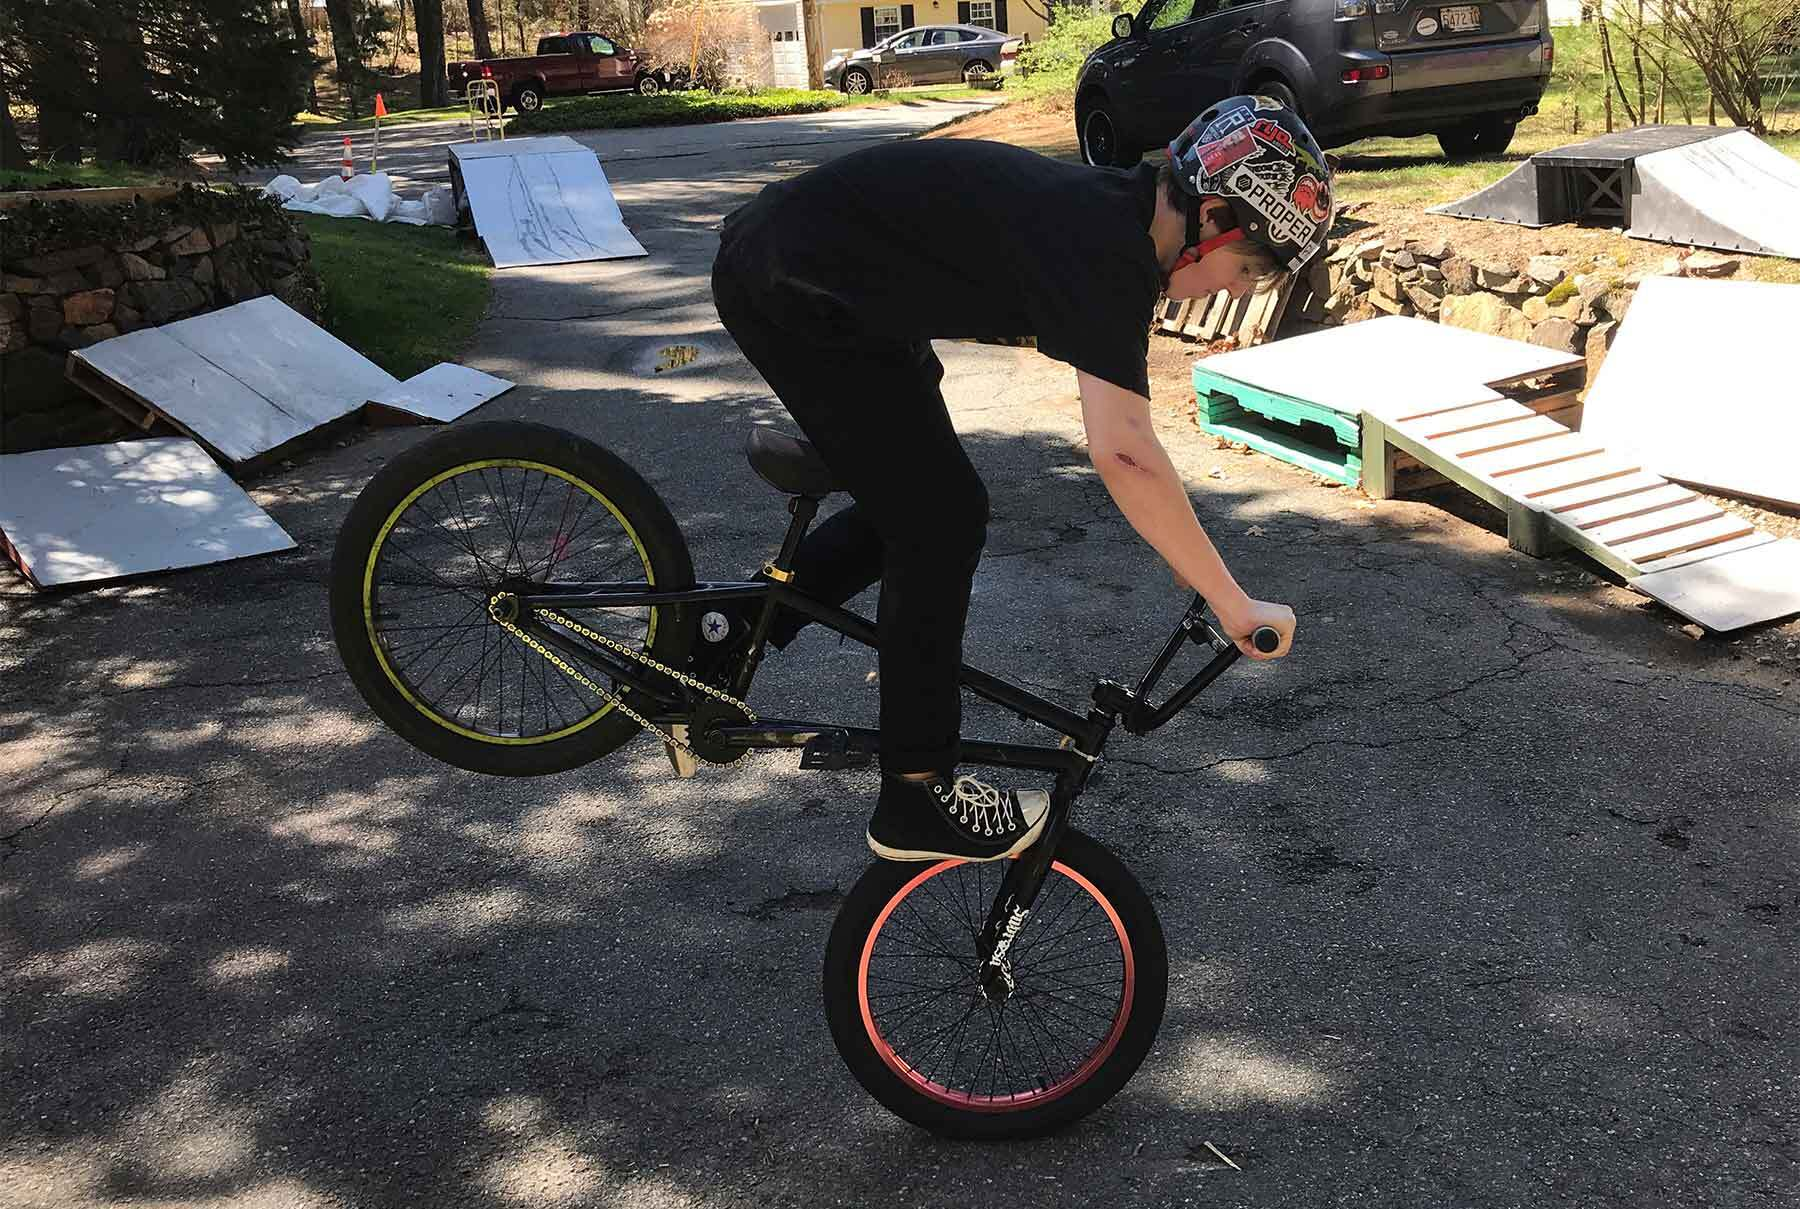 A boy wearing a helmet riding a BMX bike with the back wheel up in the air